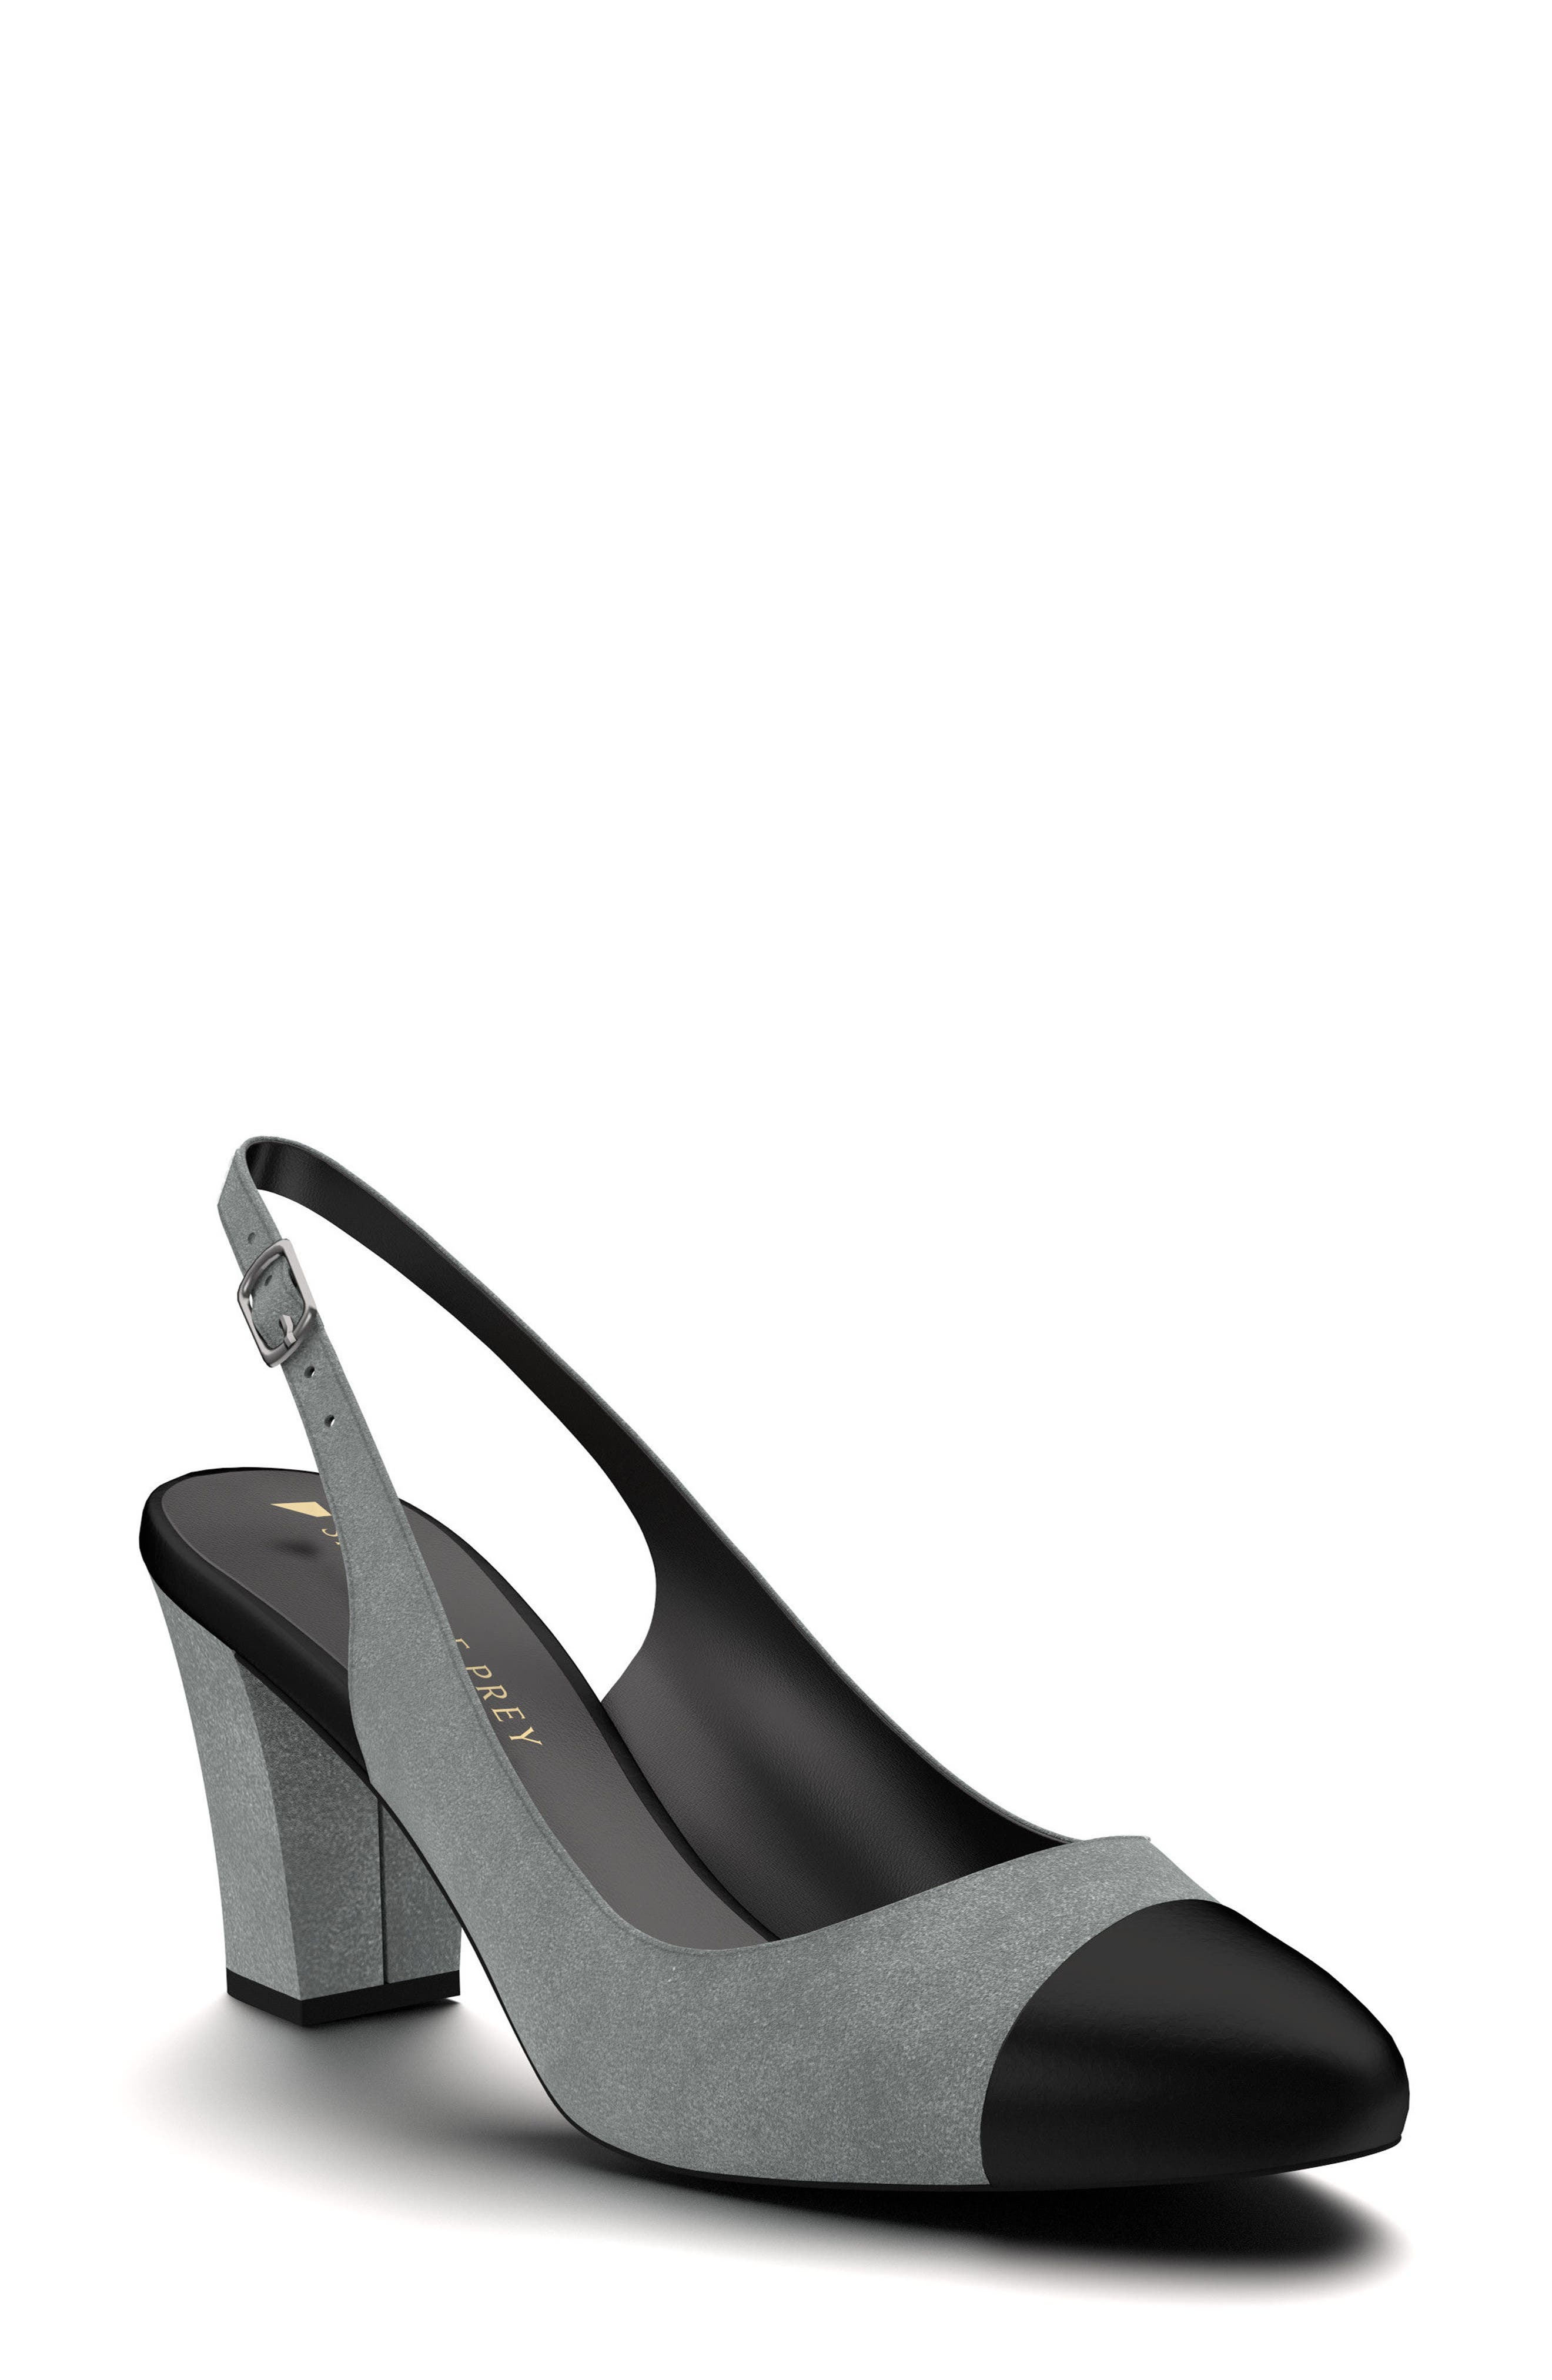 Shoes of Prey Slingback Pump (Women)